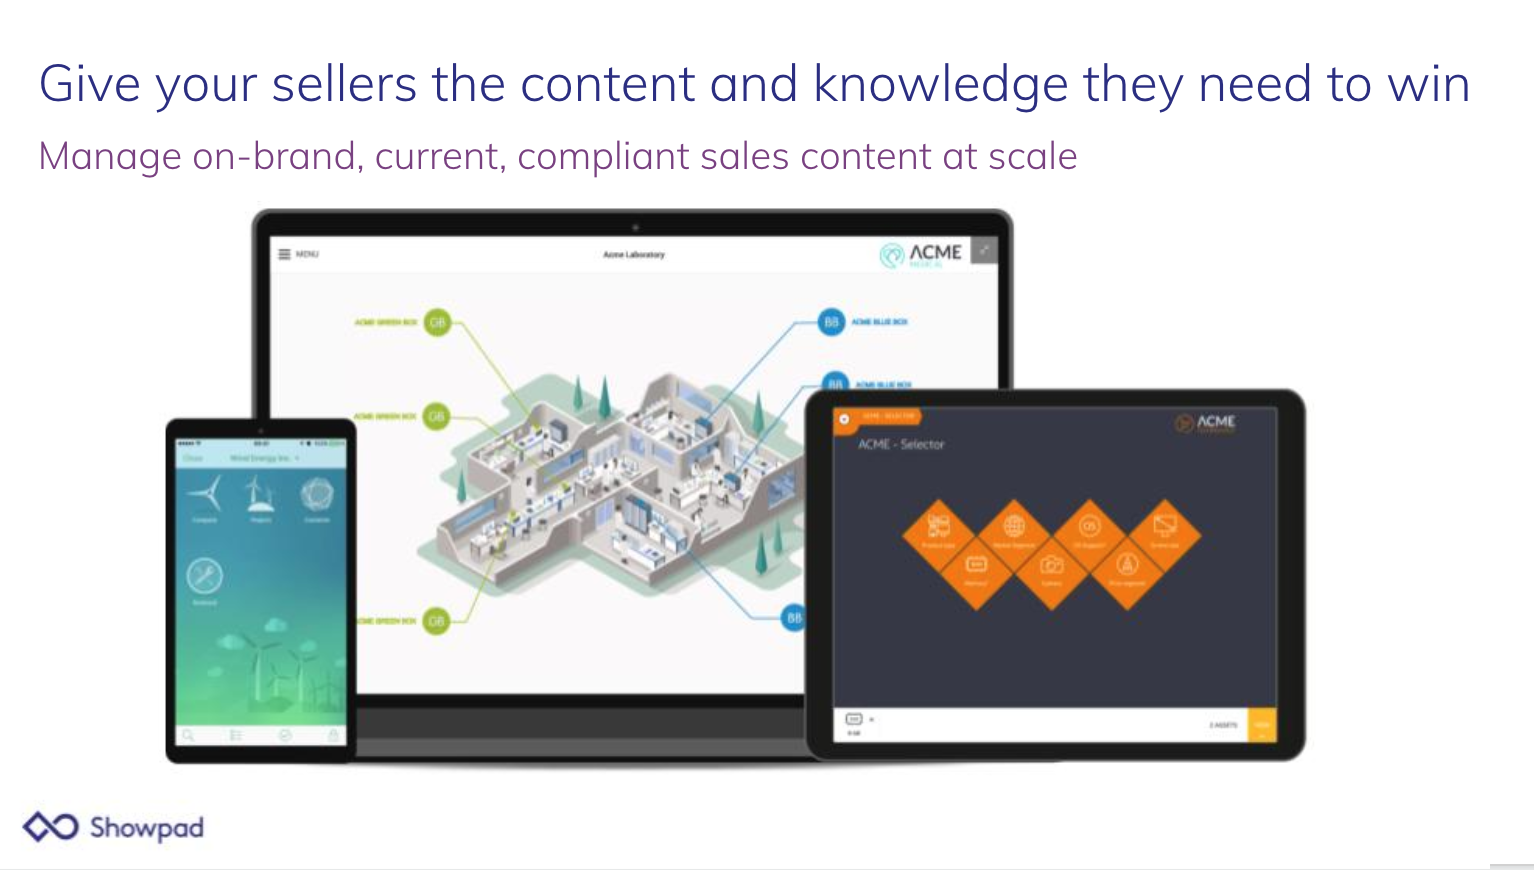 Showpad Content Demo - Give your sellers the content and knowledge they need to win